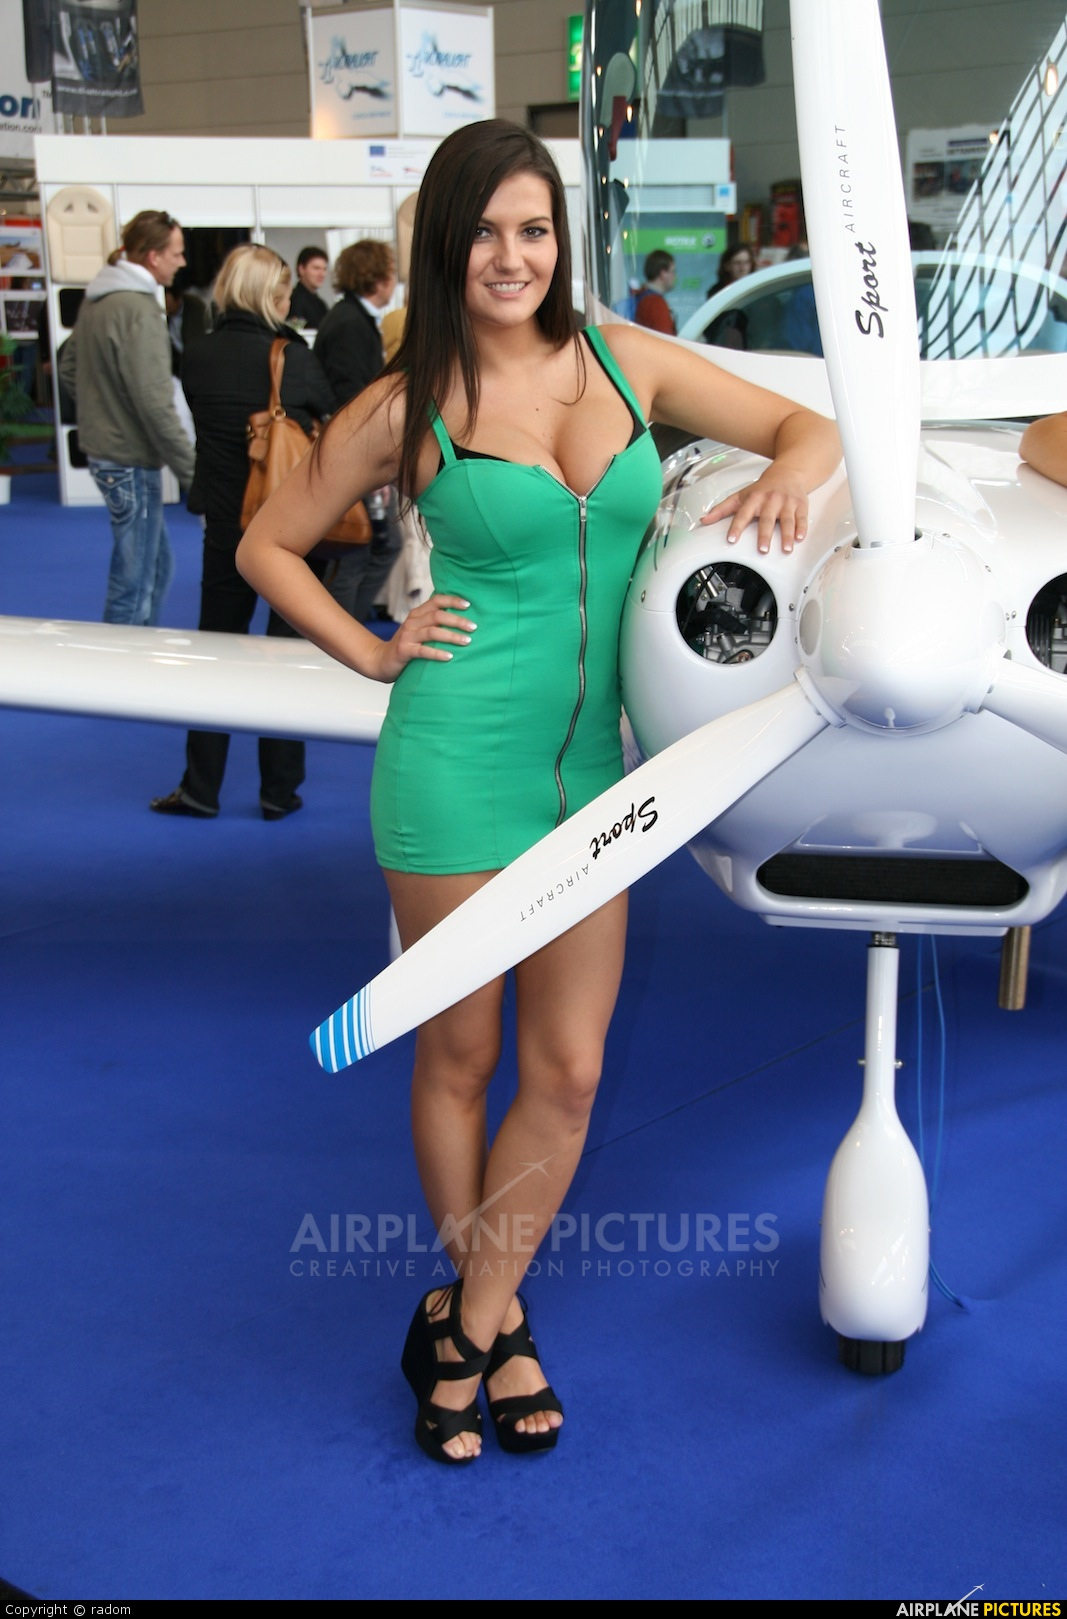 - Aviation Glamour - aircraft at Friedrichshafen